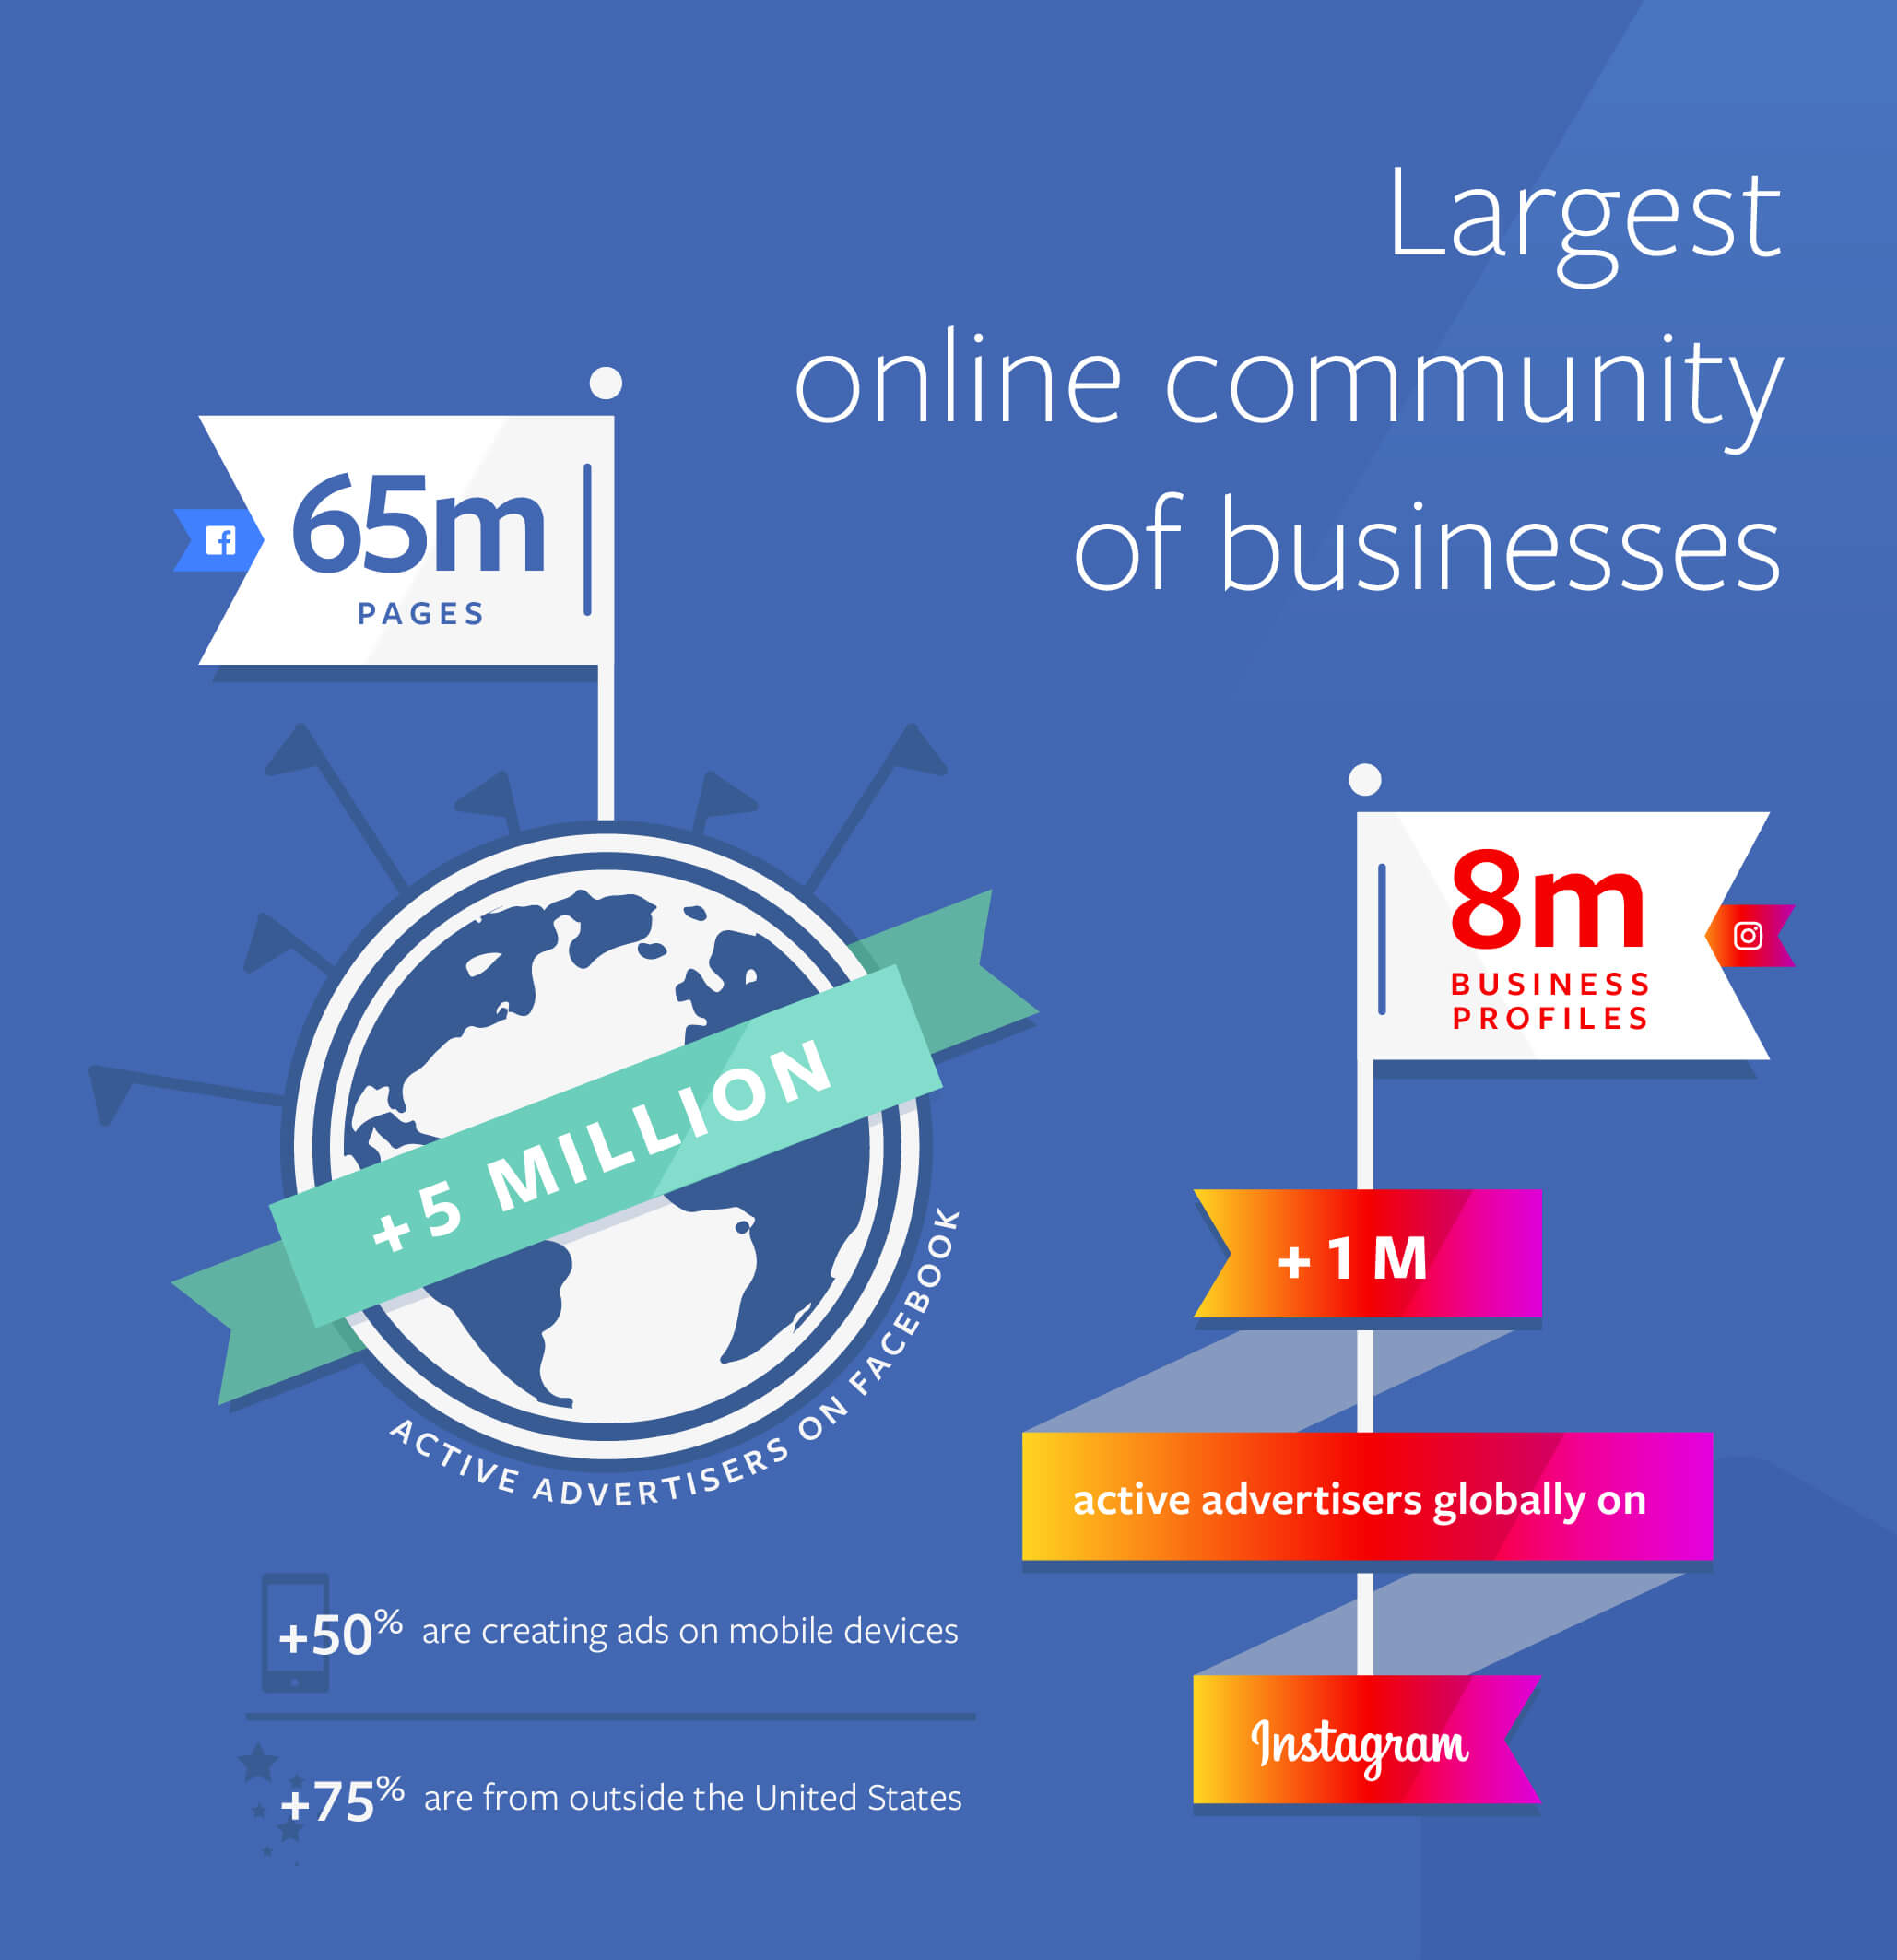 wersm-facebook-business-community